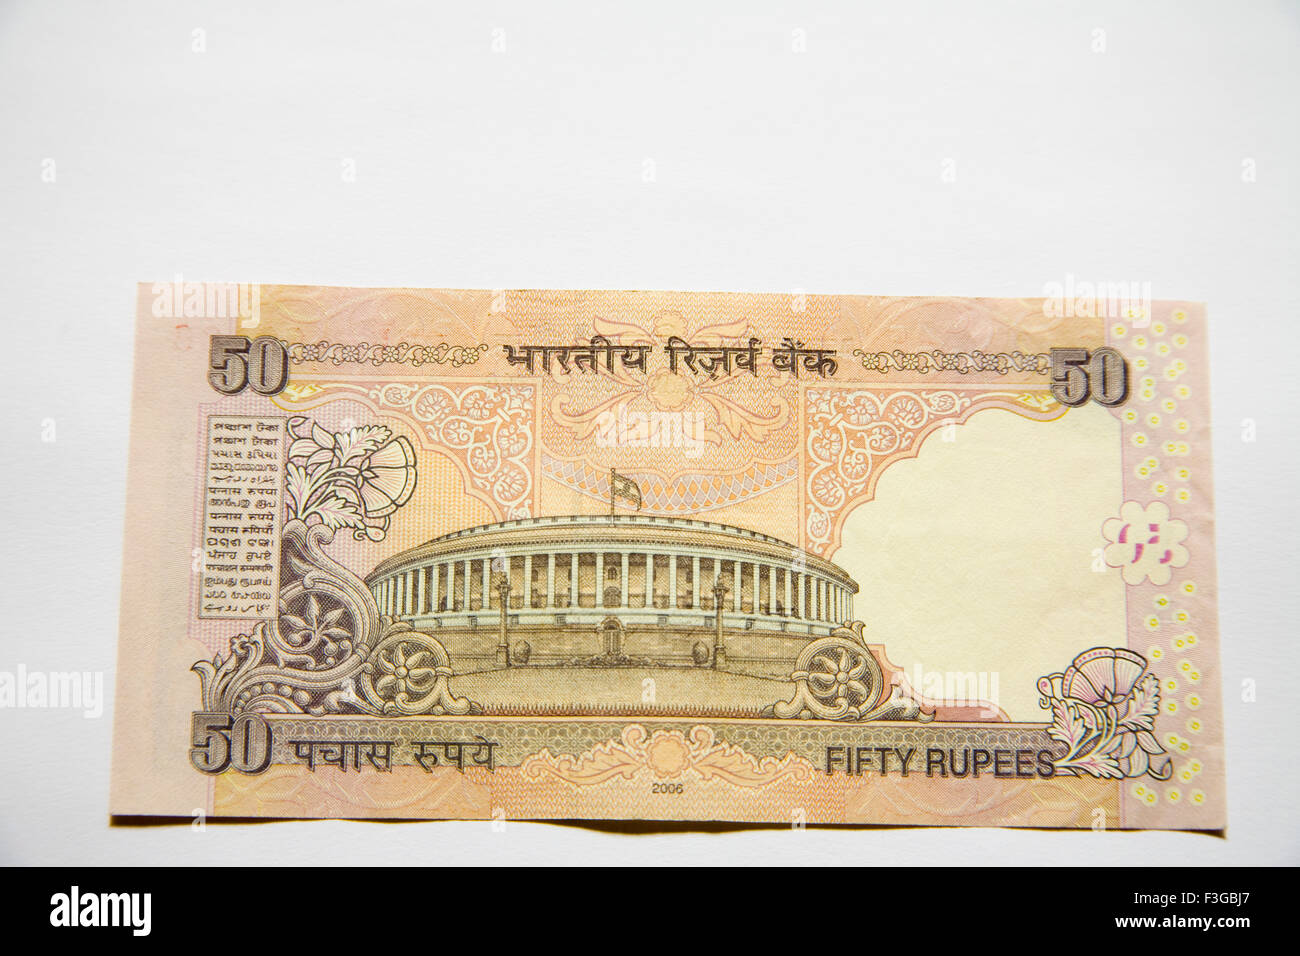 50 Rupee Note Stock Photos & 50 Rupee Note Stock Images - Alamy